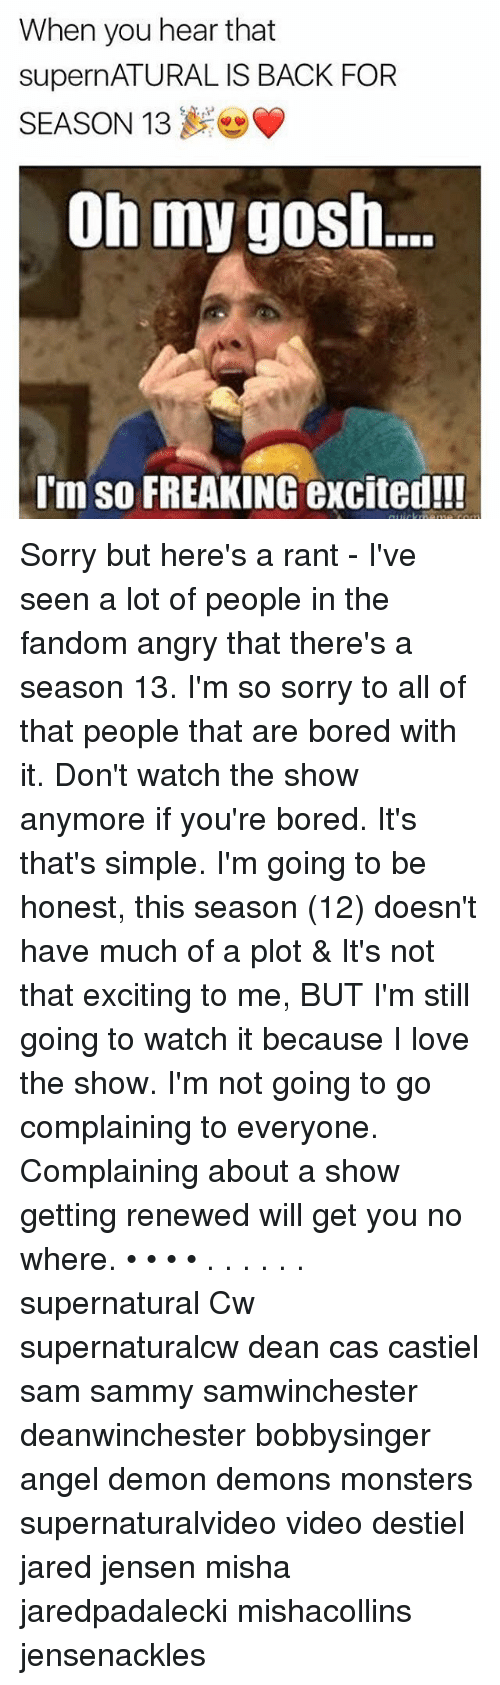 Memes, Monster, and 🤖: When you hear that  supernATURAL IS BACK FOR  SEASON 13  Oh my gosh.  I'm so FREAKING excited!!! Sorry but here's a rant - I've seen a lot of people in the fandom angry that there's a season 13. I'm so sorry to all of that people that are bored with it. Don't watch the show anymore if you're bored. It's that's simple. I'm going to be honest, this season (12) doesn't have much of a plot & It's not that exciting to me, BUT I'm still going to watch it because I love the show. I'm not going to go complaining to everyone. Complaining about a show getting renewed will get you no where. • • • • . . . . . . supernatural Cw supernaturalcw dean cas castiel sam sammy samwinchester deanwinchester bobbysinger angel demon demons monsters supernaturalvideo video destiel jared jensen misha jaredpadalecki mishacollins jensenackles